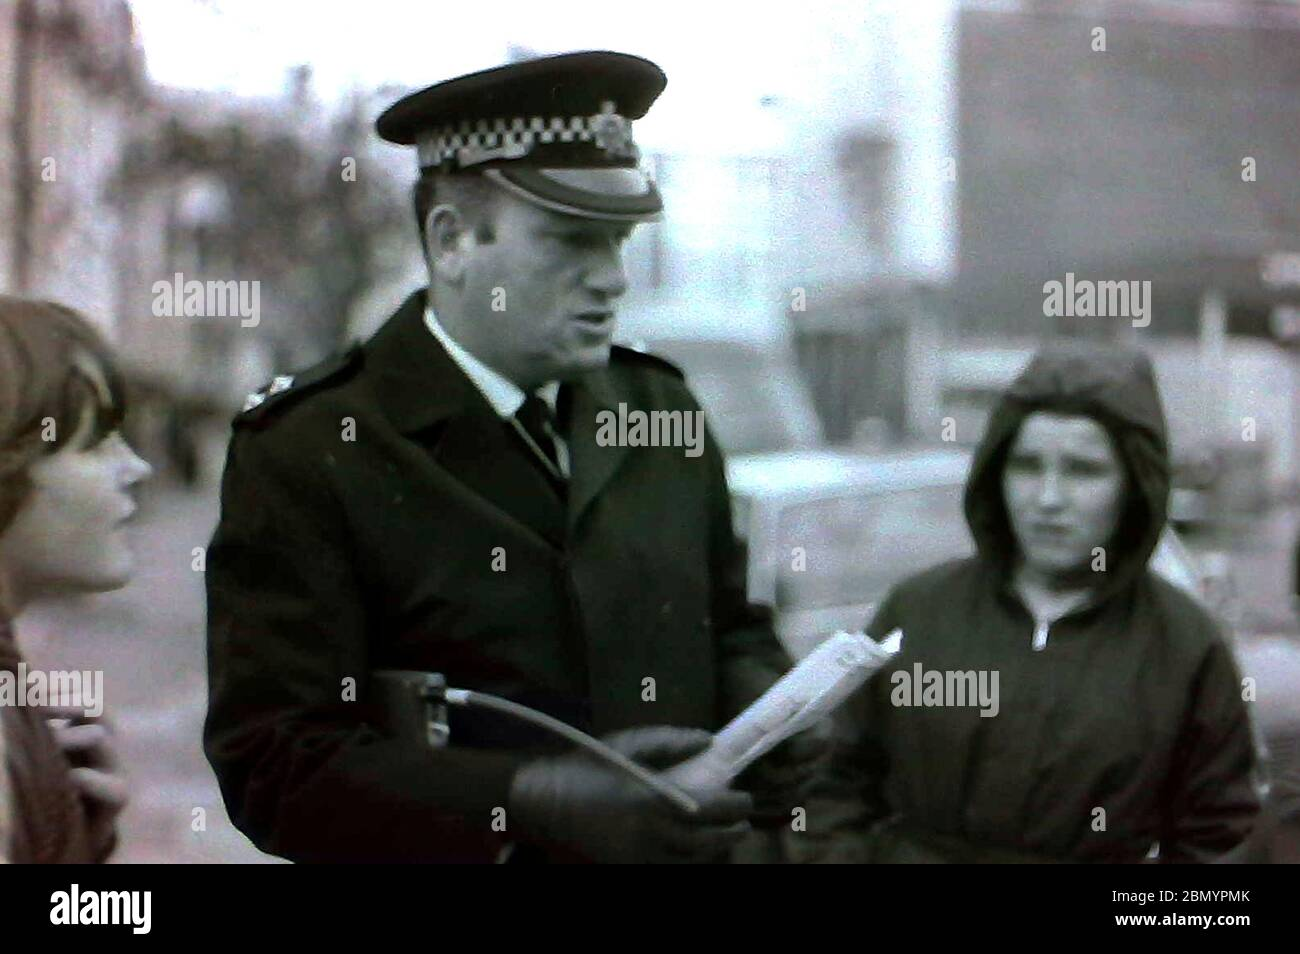 A senior police officer with a radio under his arm talks to young people in the street in Manchester, uk, in the 1970's Stock Photo